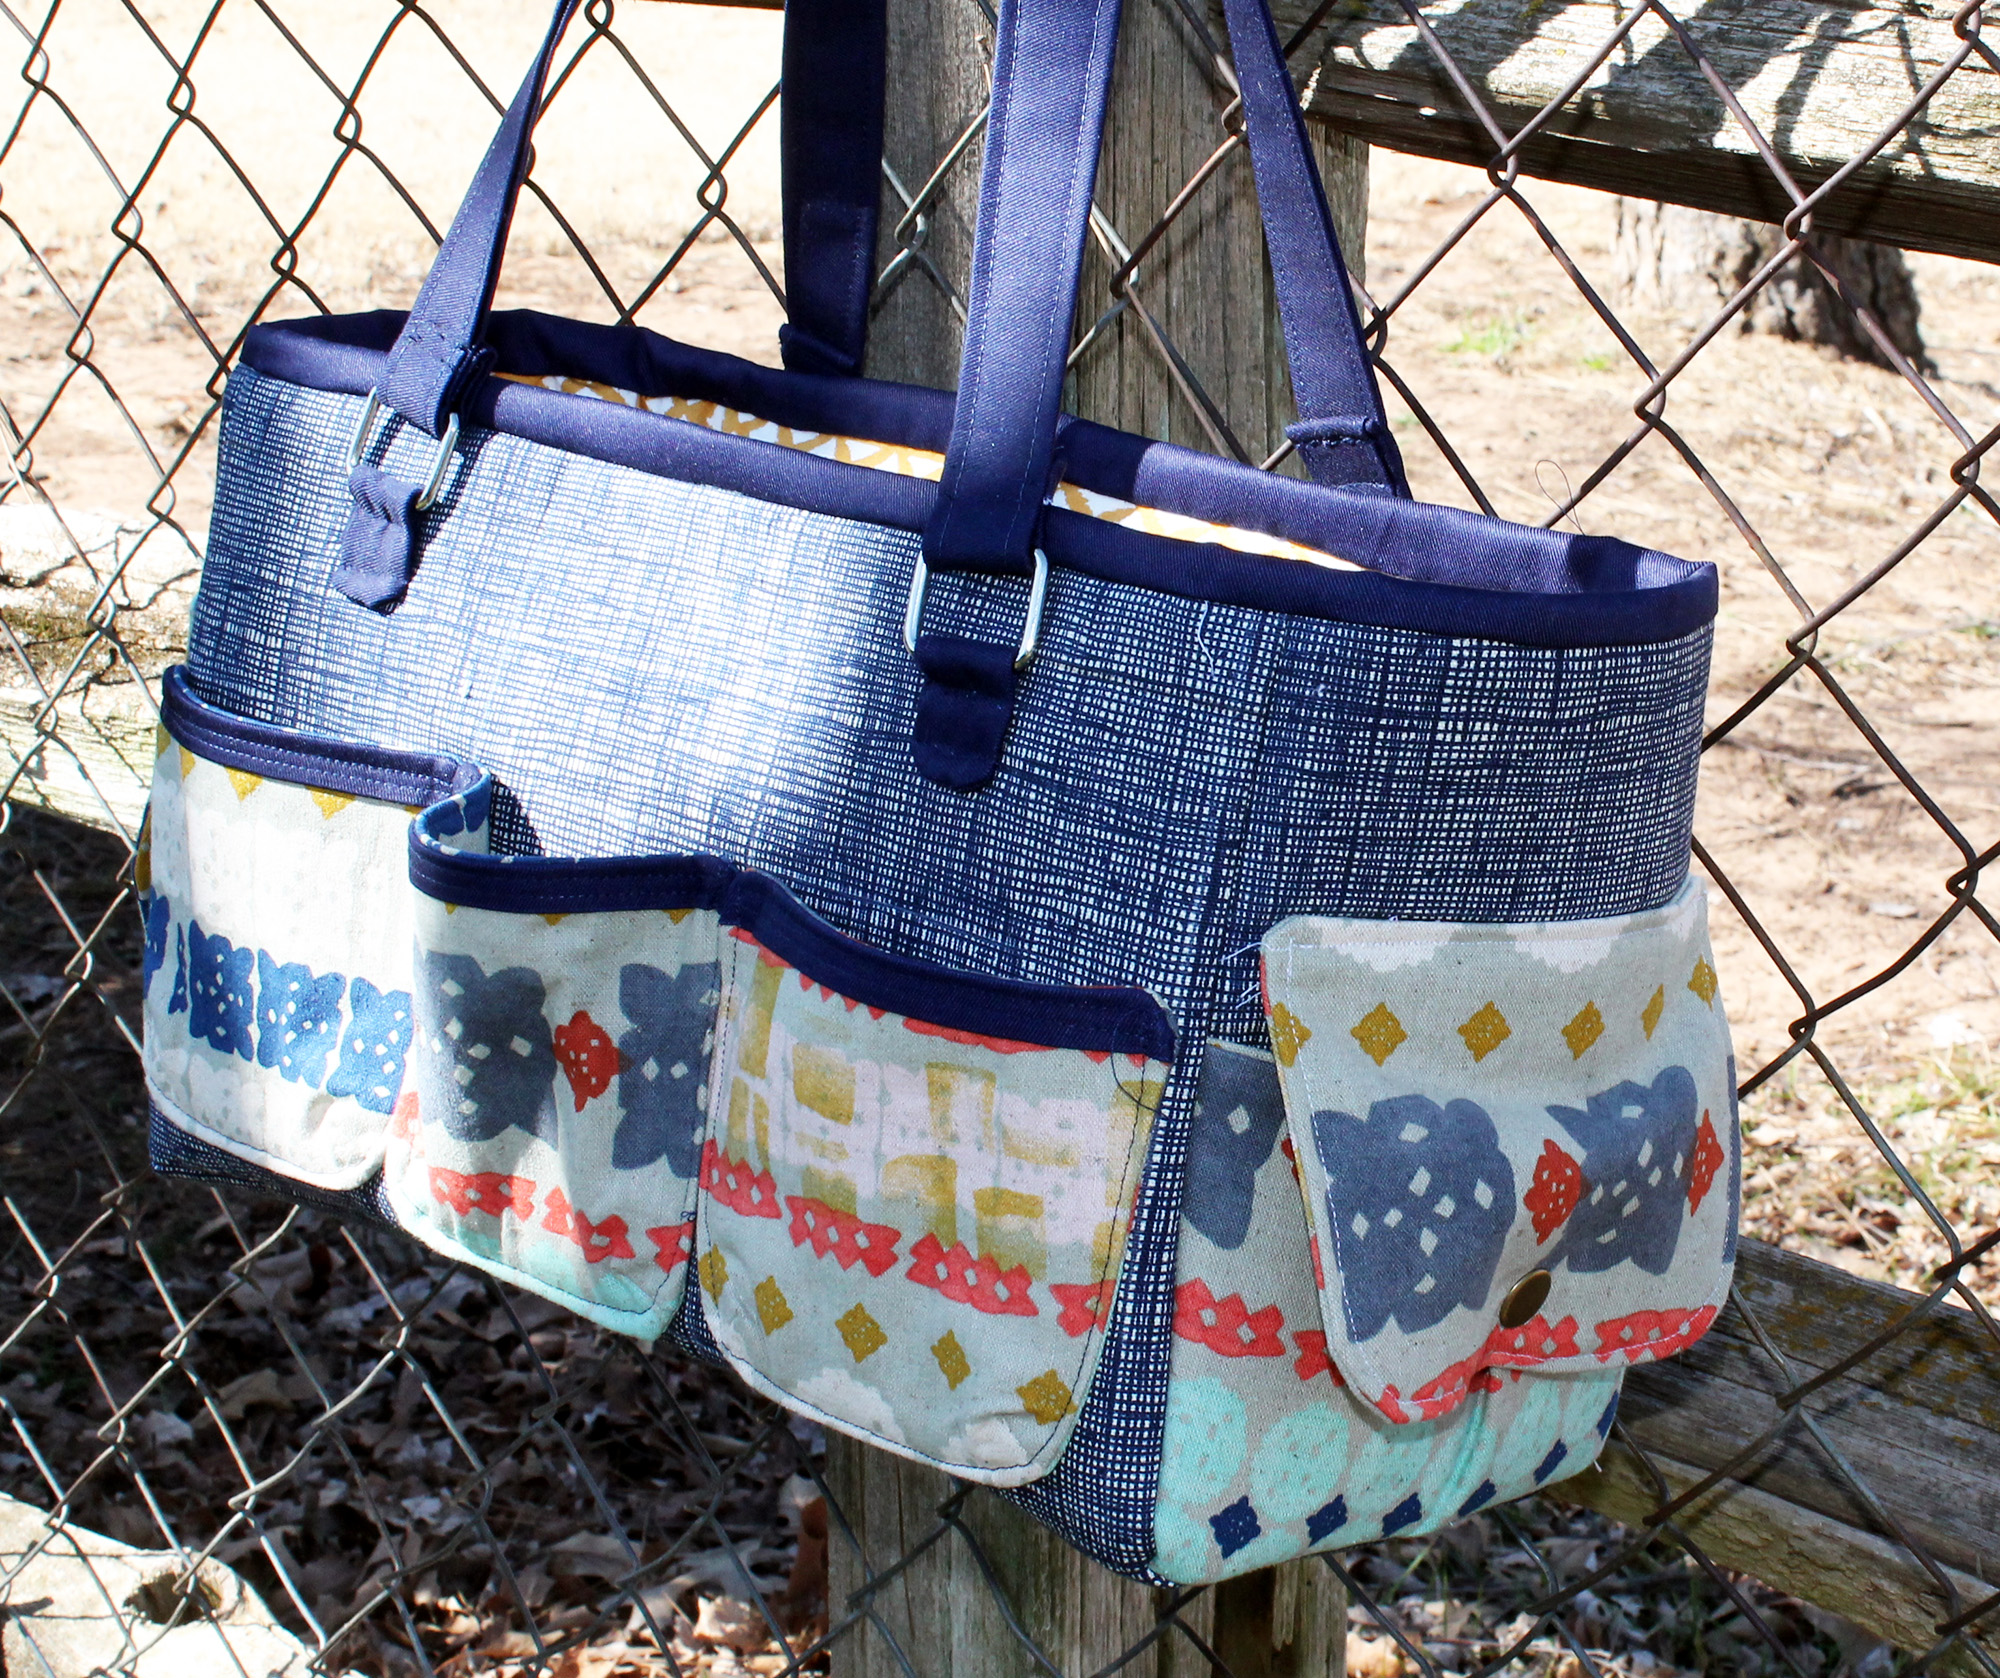 Sew Sweetness Oslo Craft Bag sewing pattern, sewn by Jamie